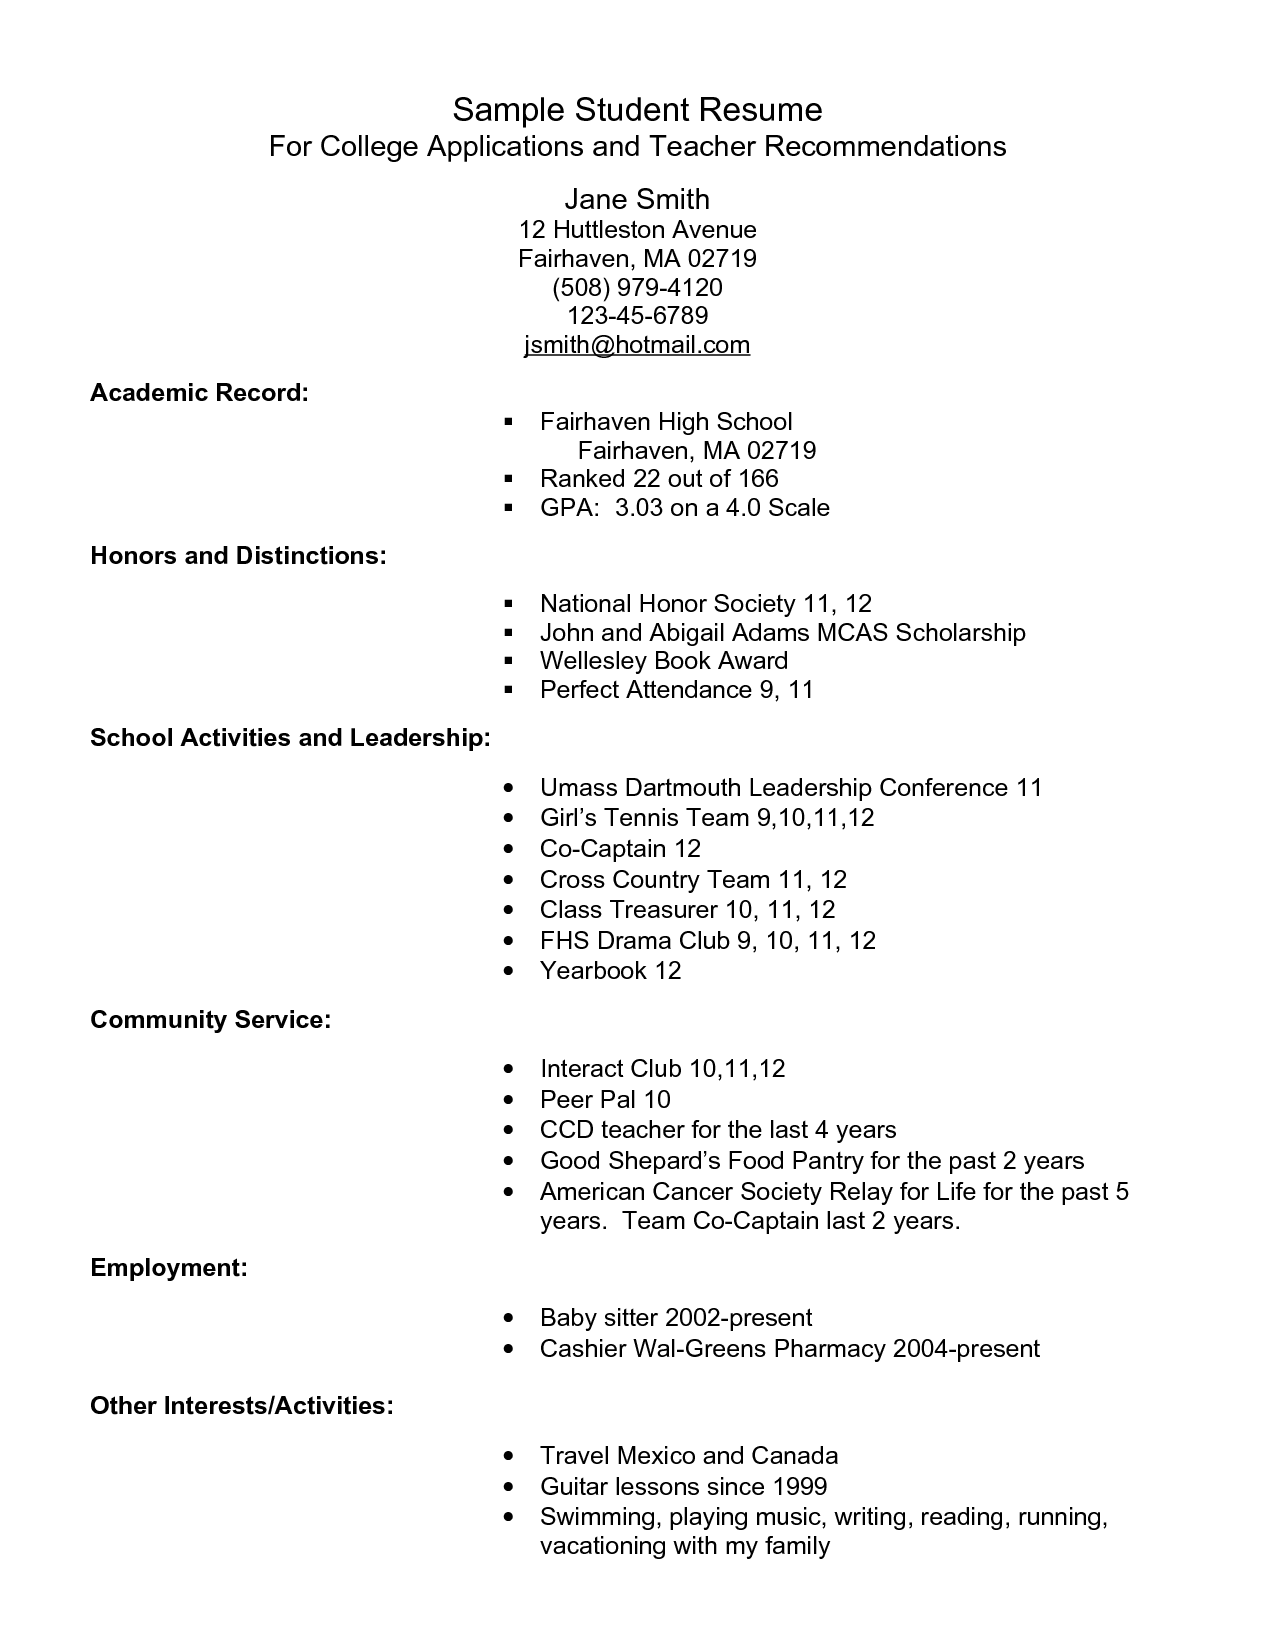 example resume for high school students for college applications – College Resume